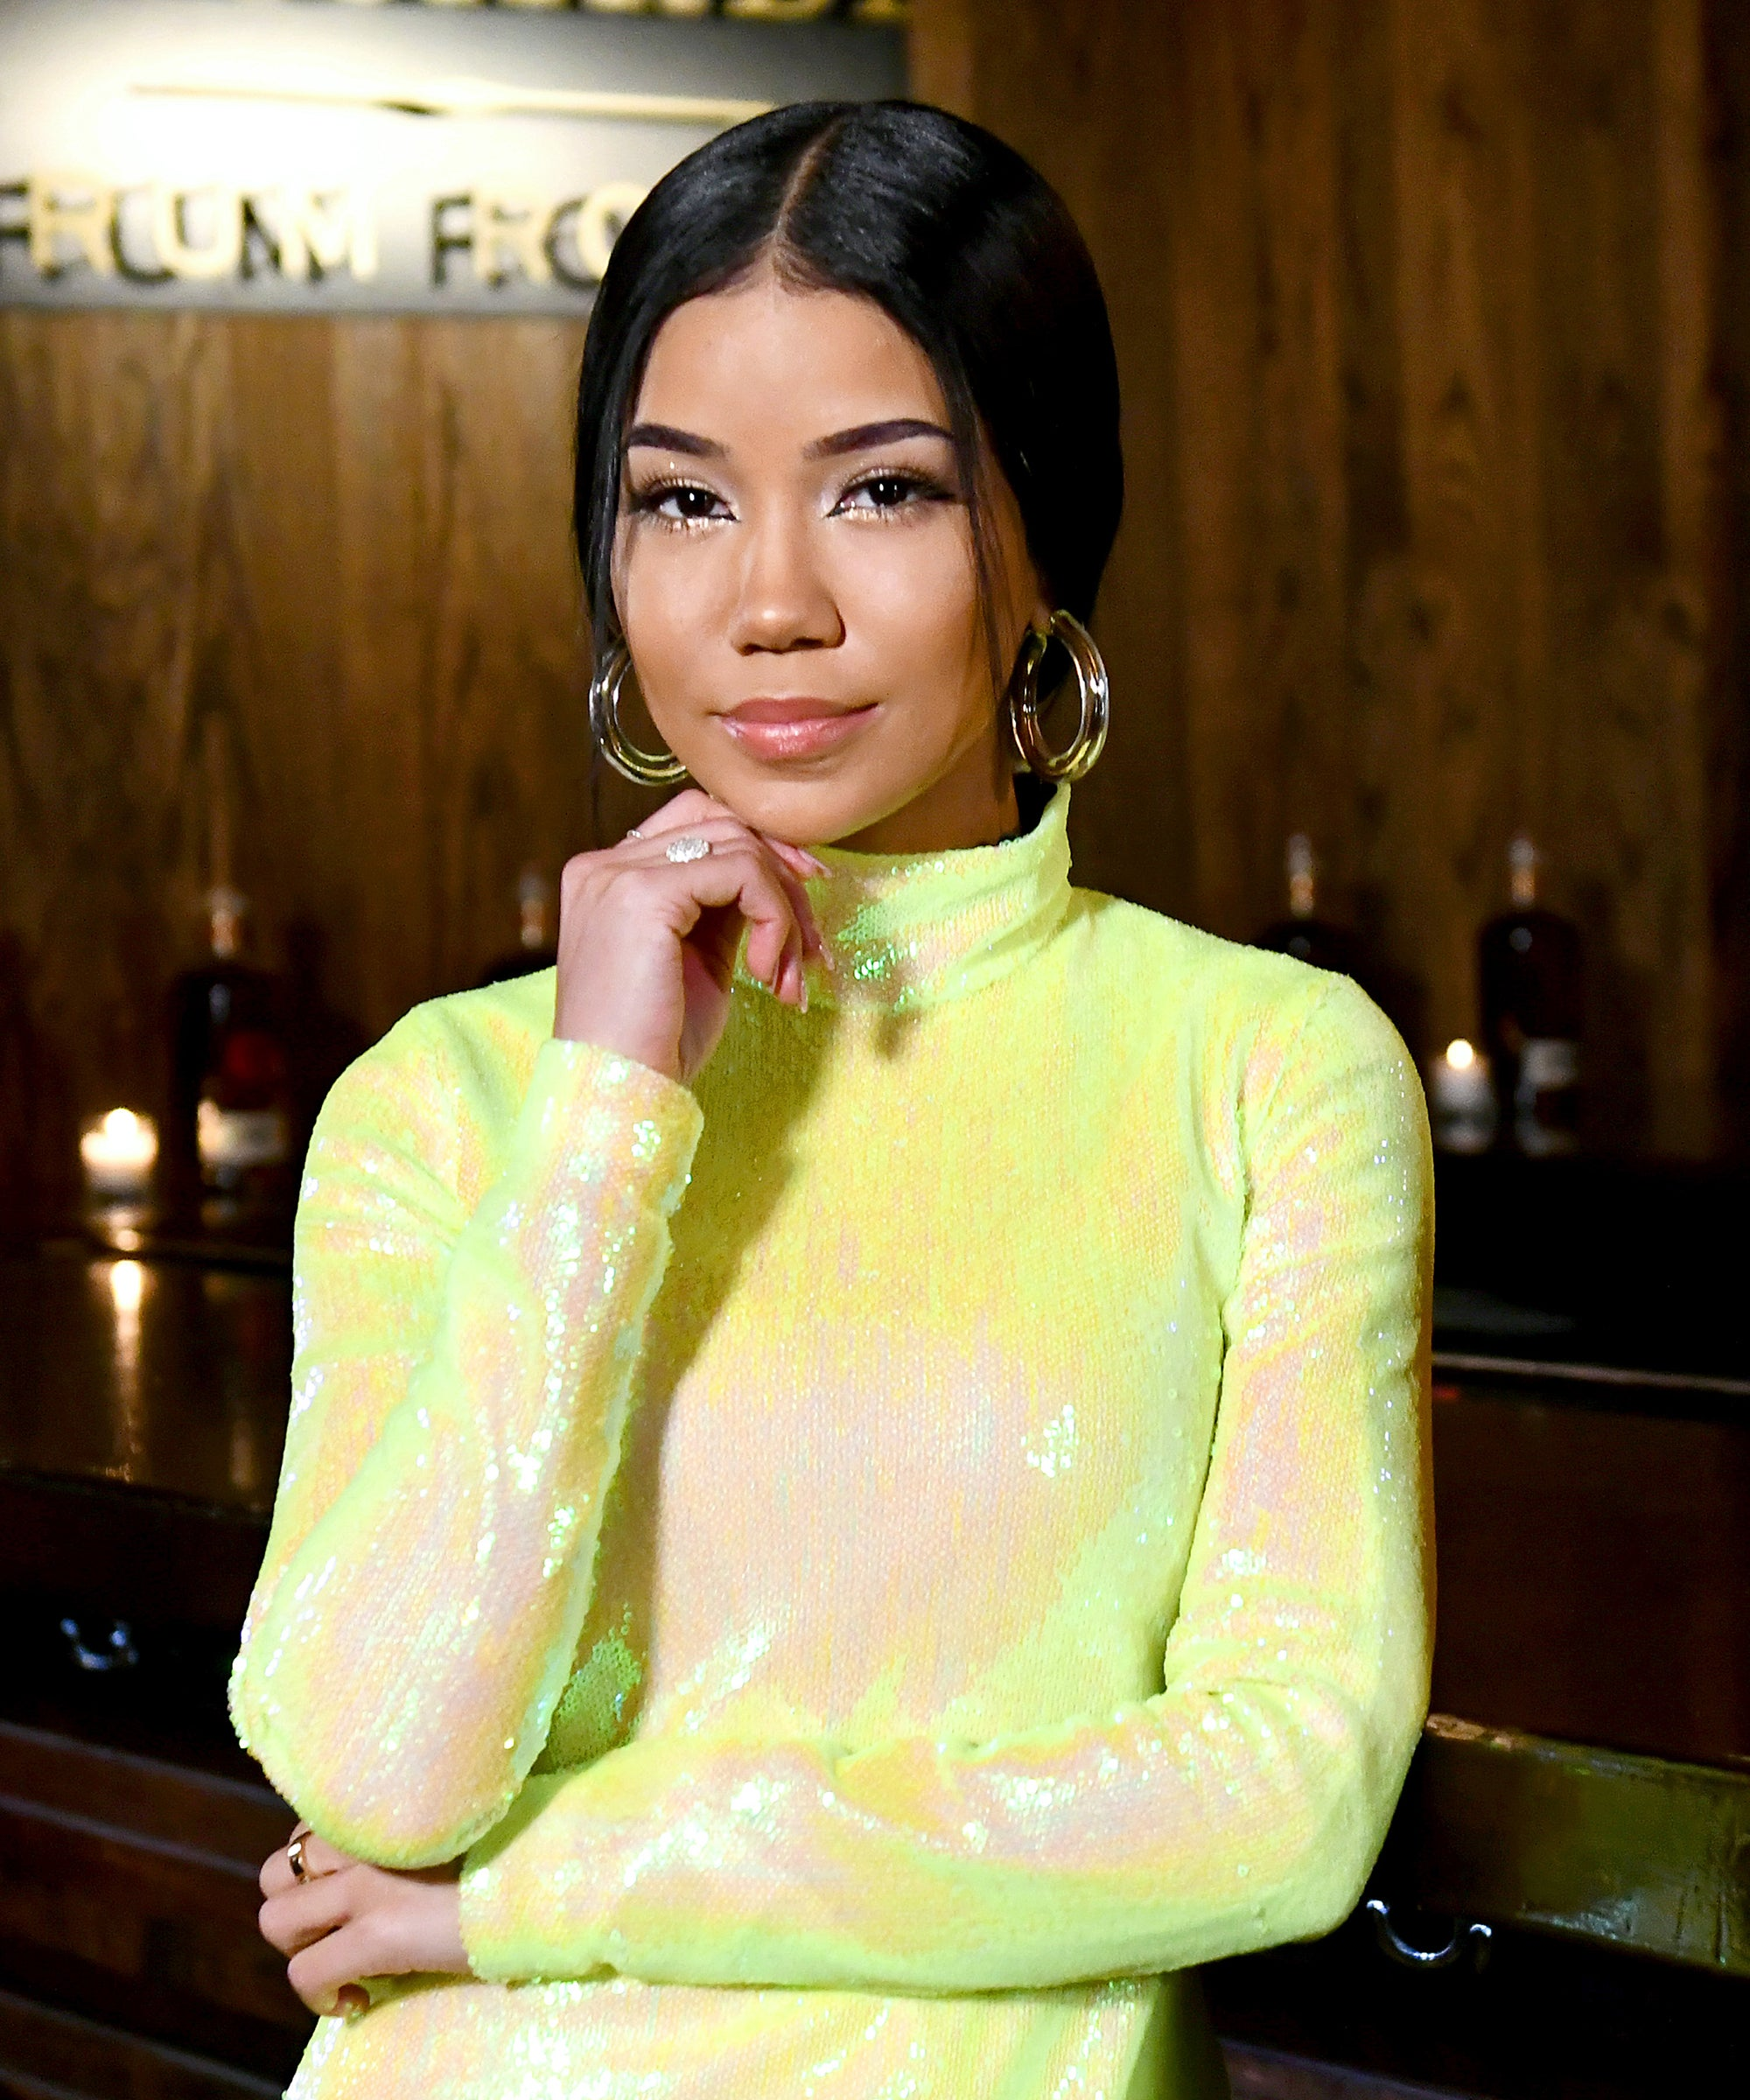 How Jhené Aiko's Daughter Is Teaching Her To Be More Confident